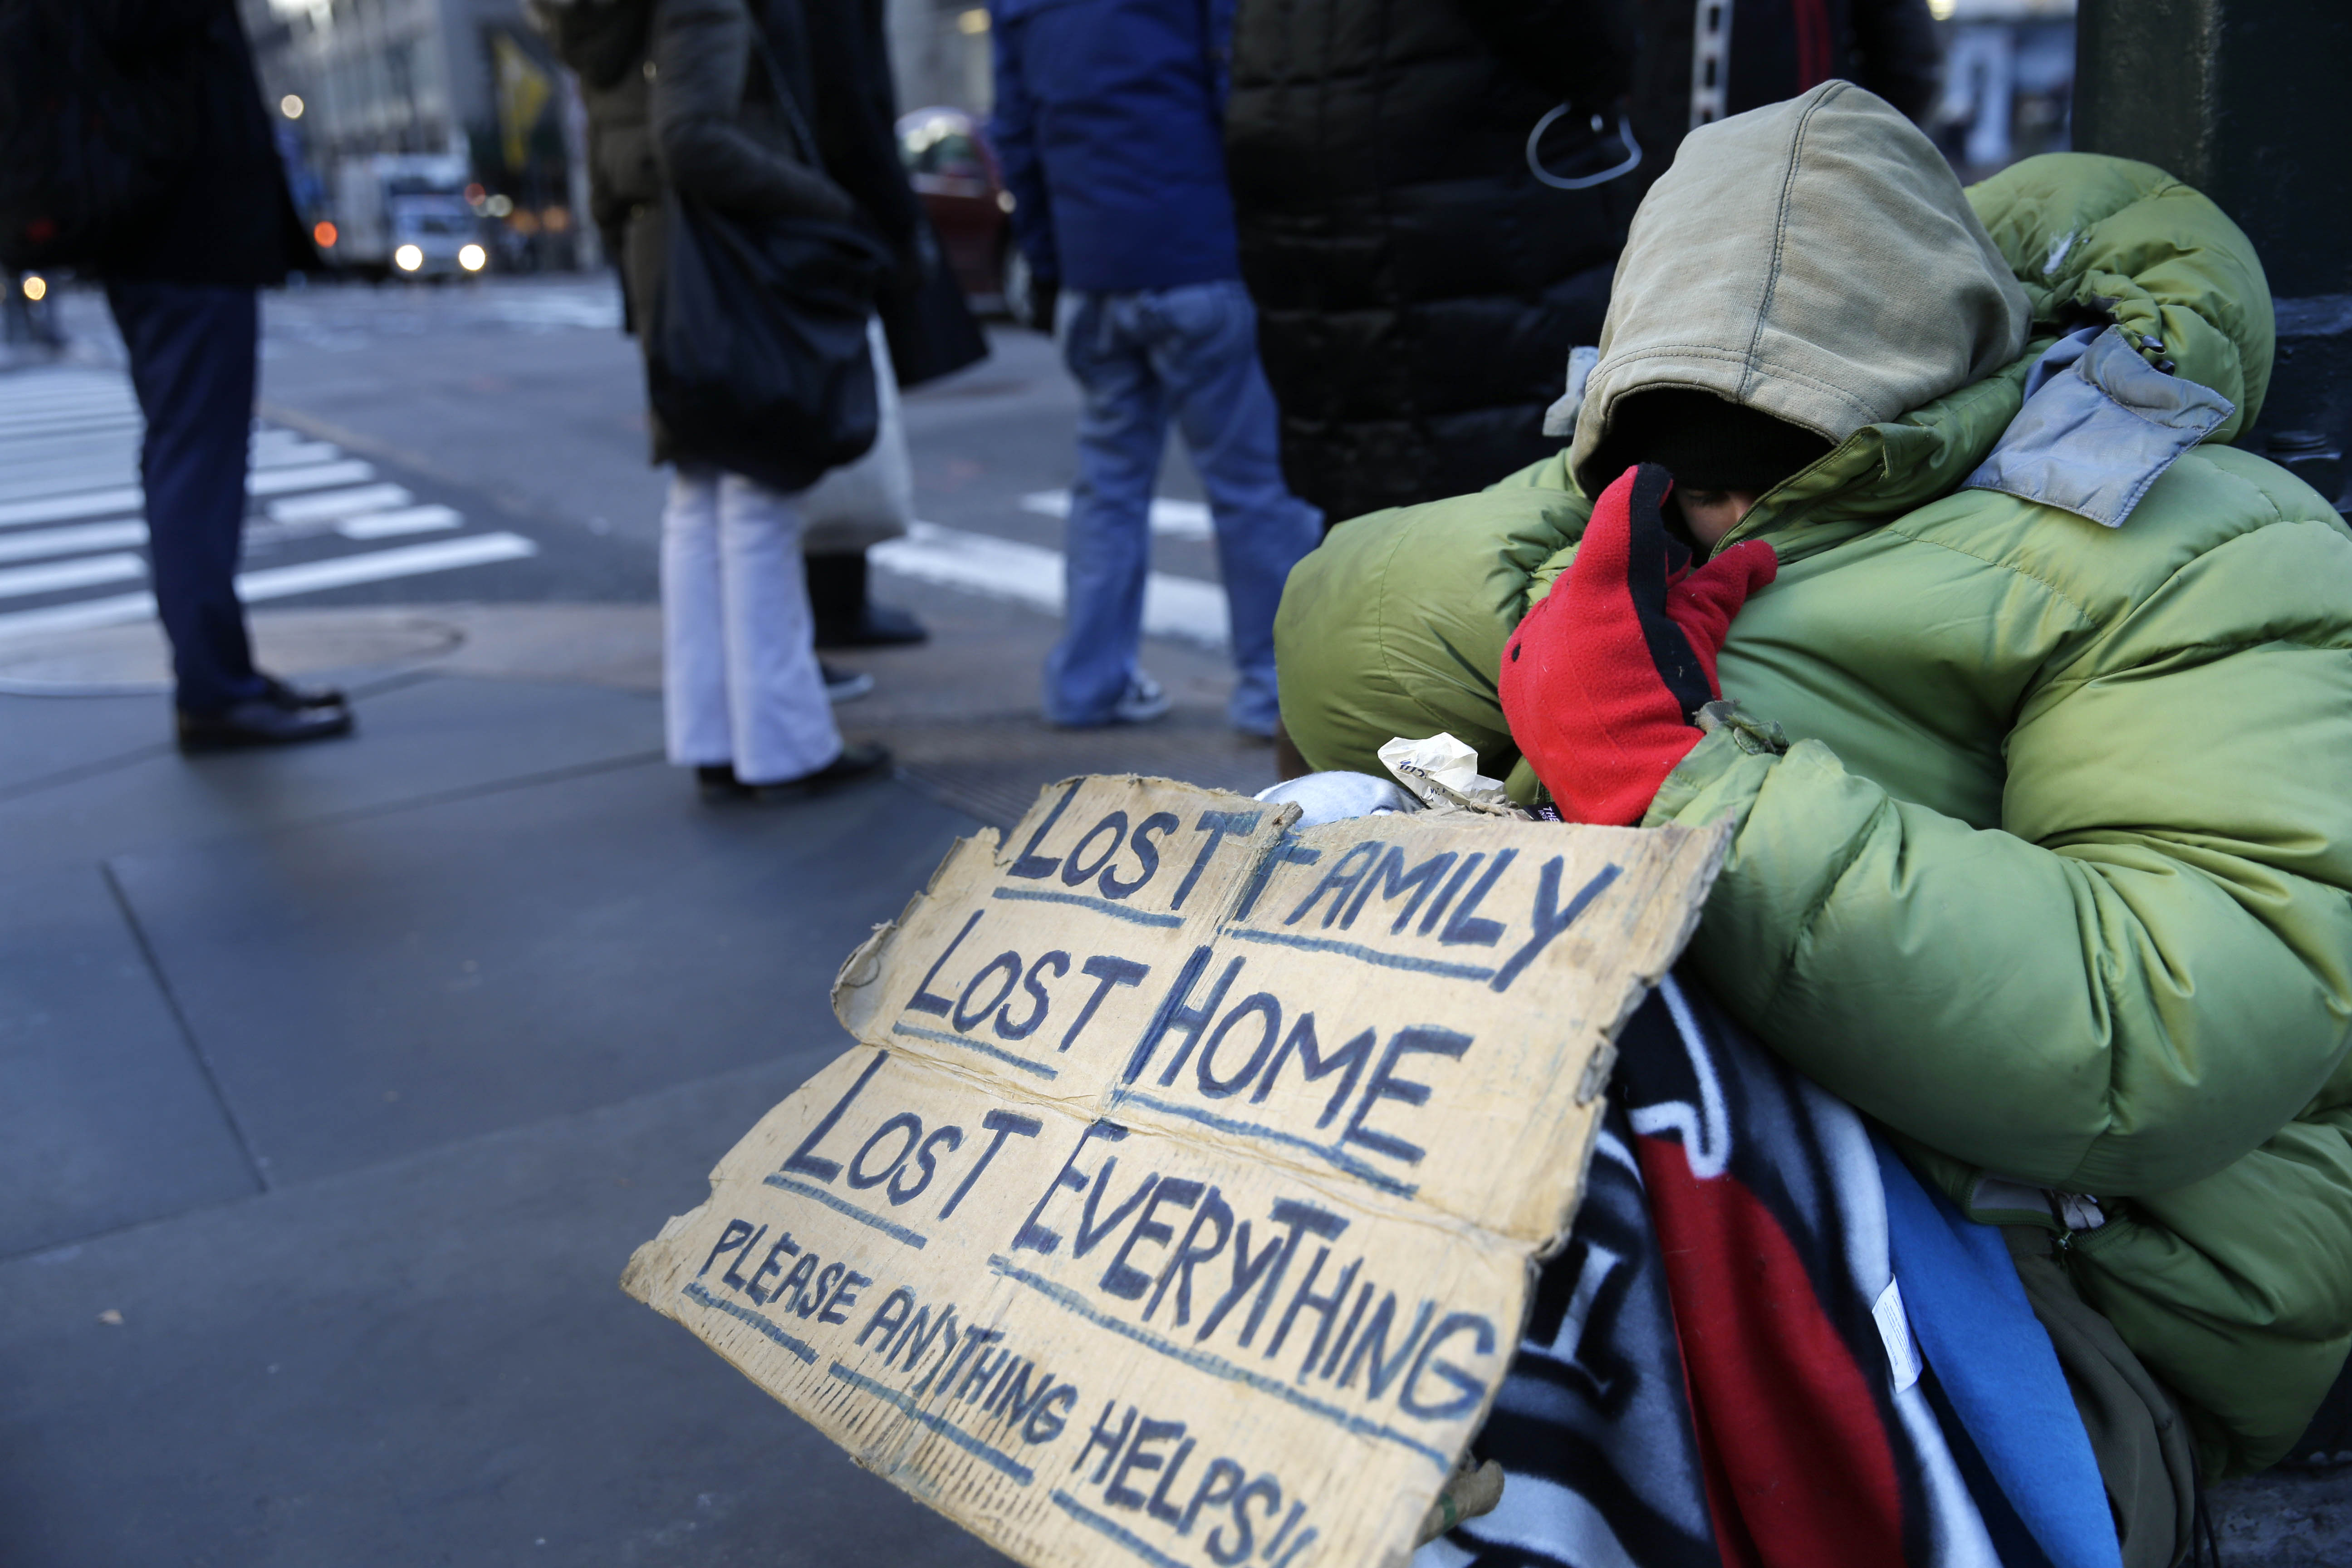 race and homelessness in new york city Department of homeless services, the new york police department, the department of cultural affairs, the department of parks and recreation, and the new york city commission on human rights.